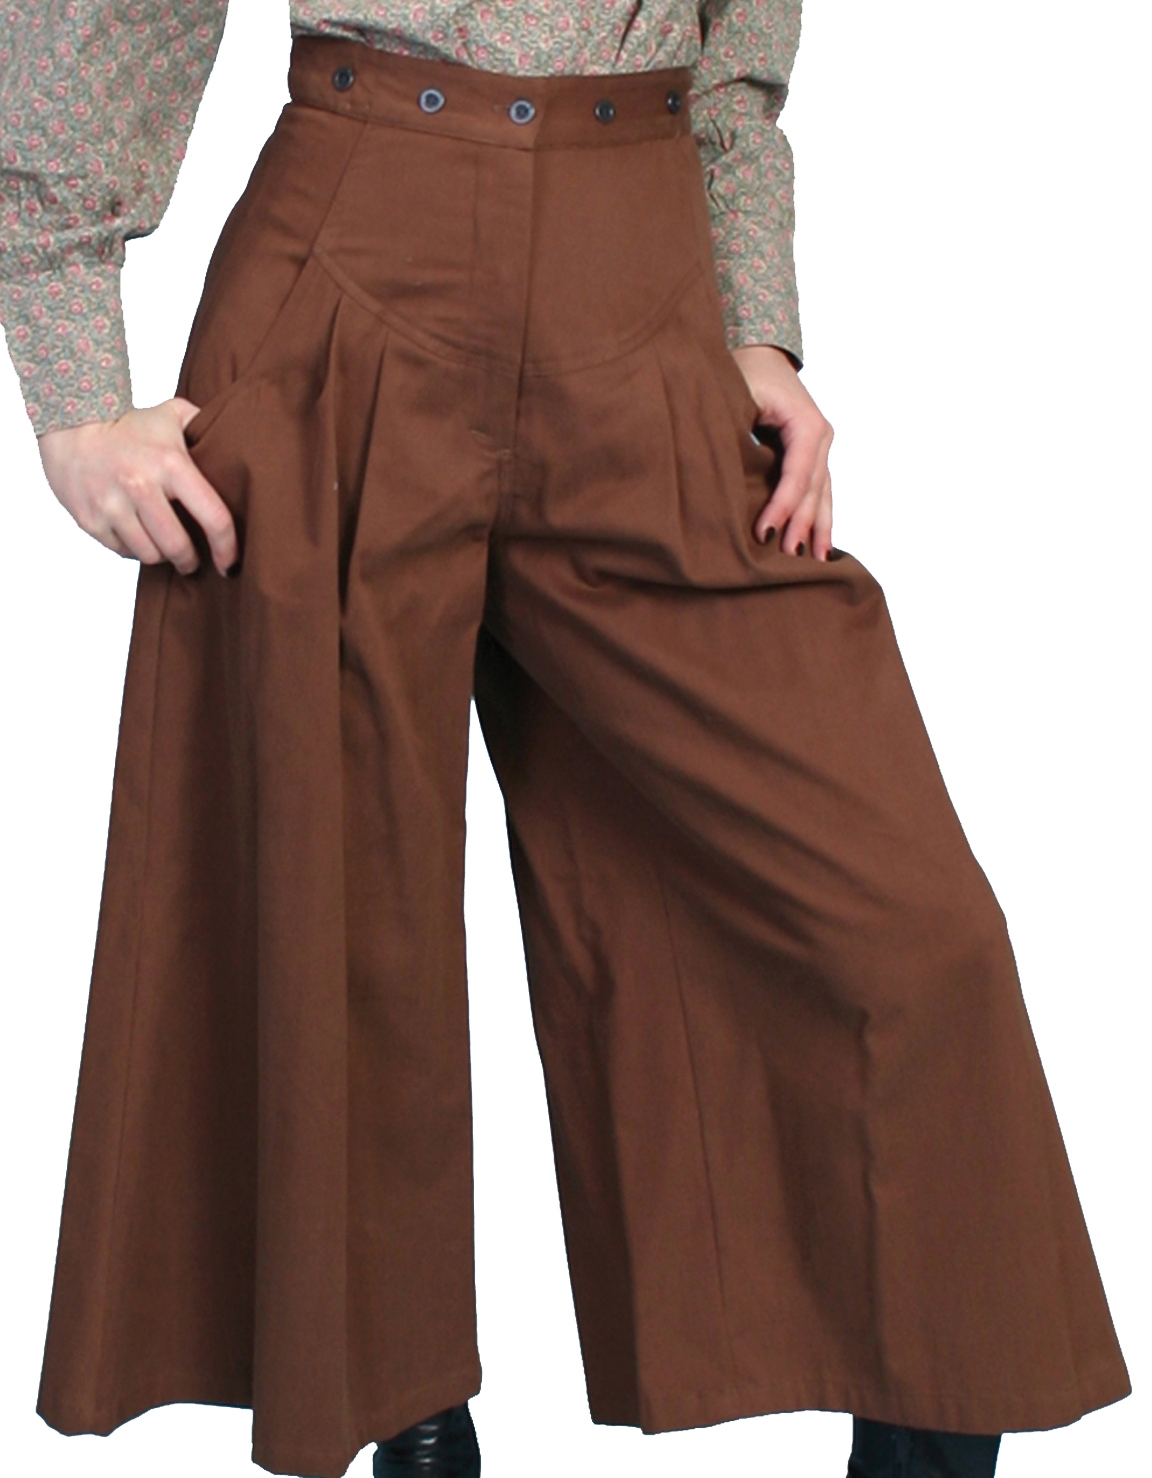 These lovely Scully Womens Brown pleated Petite riding pants are made in the USA with comfortable fashionable brushed twill cotton authentic 1800's old west womens split skirt with pewter buttons for suspenders.